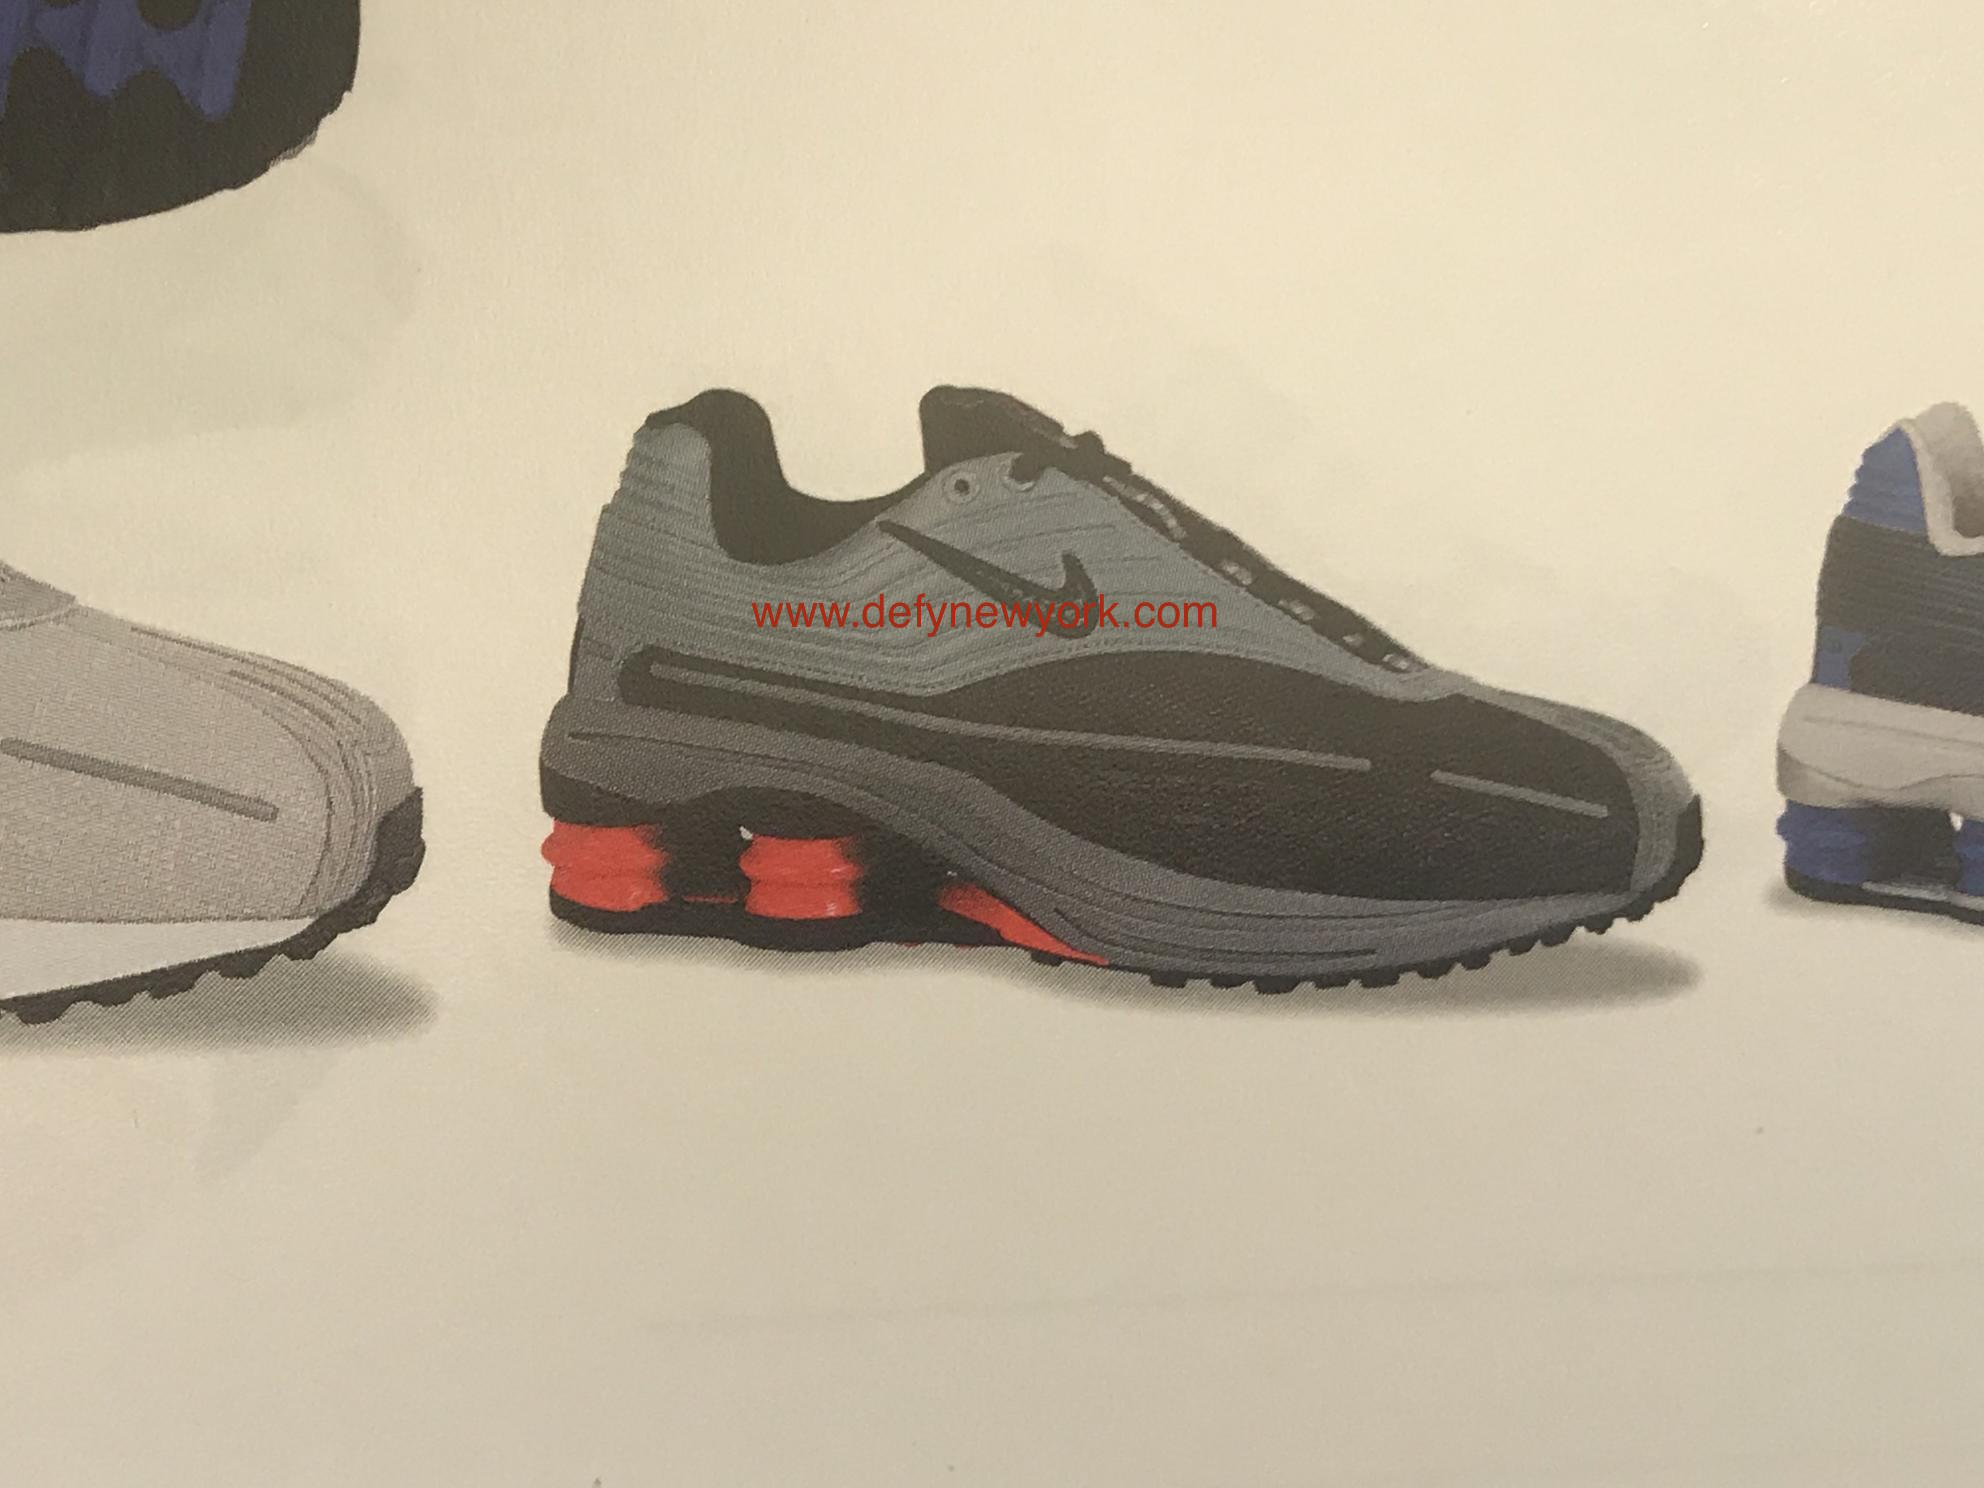 3f27bf0a676 ... Nike Shox pillar tech and pylon midsole with a durable BRS 1000 heel  and Duralon forefoot. Retail was  125 with prices on eBay and the secondary  market ...